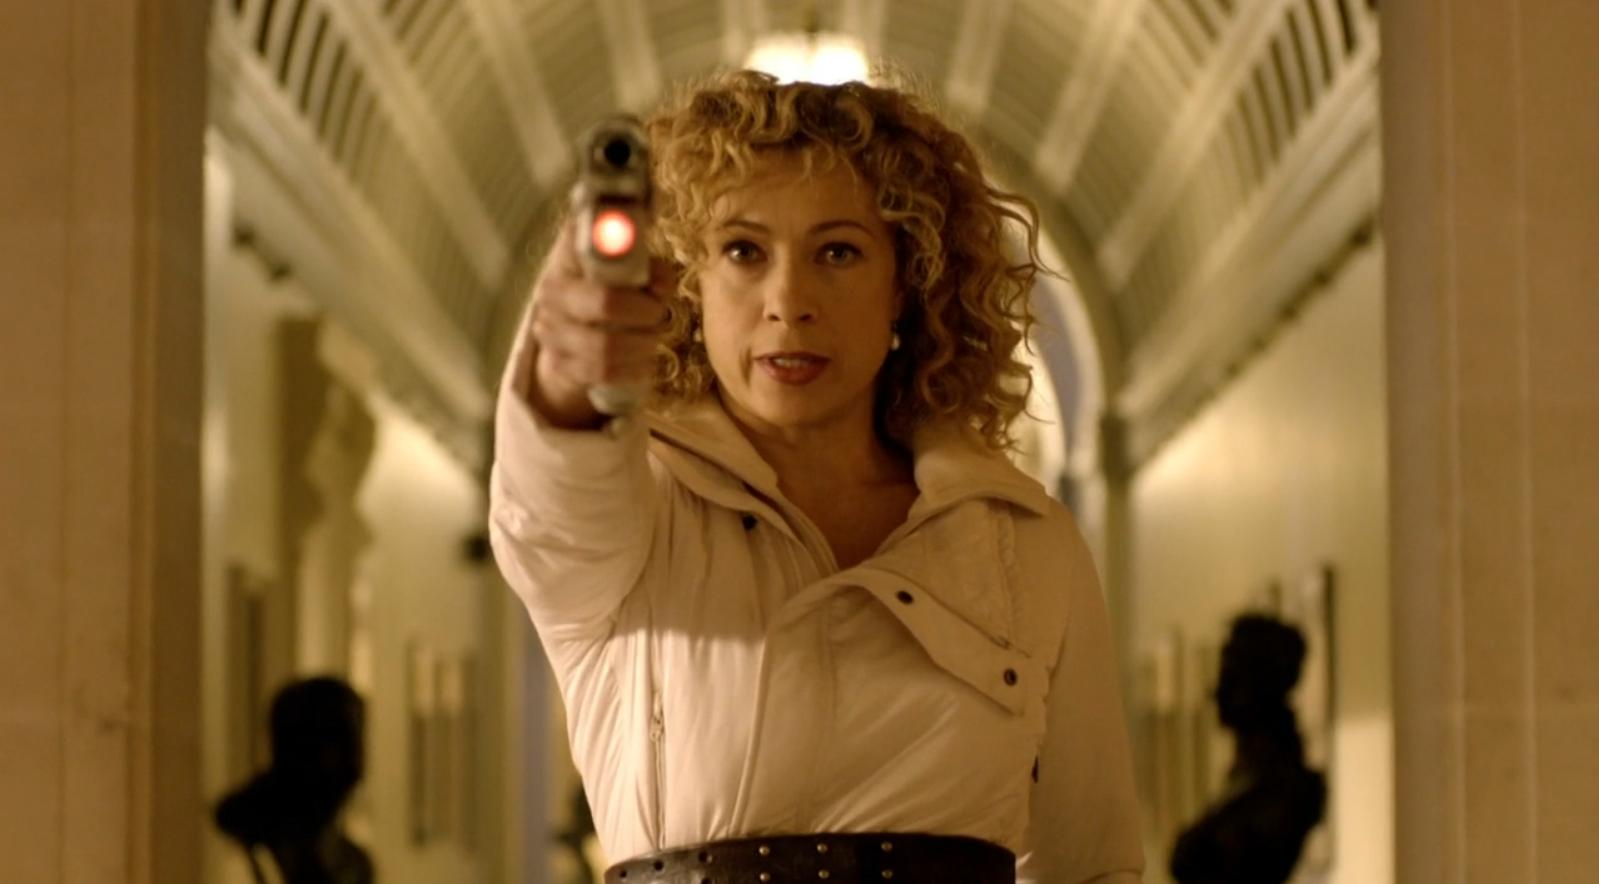 Doctor_who_river_song_alex_kingston_desktop_wallpaper-other.jpg